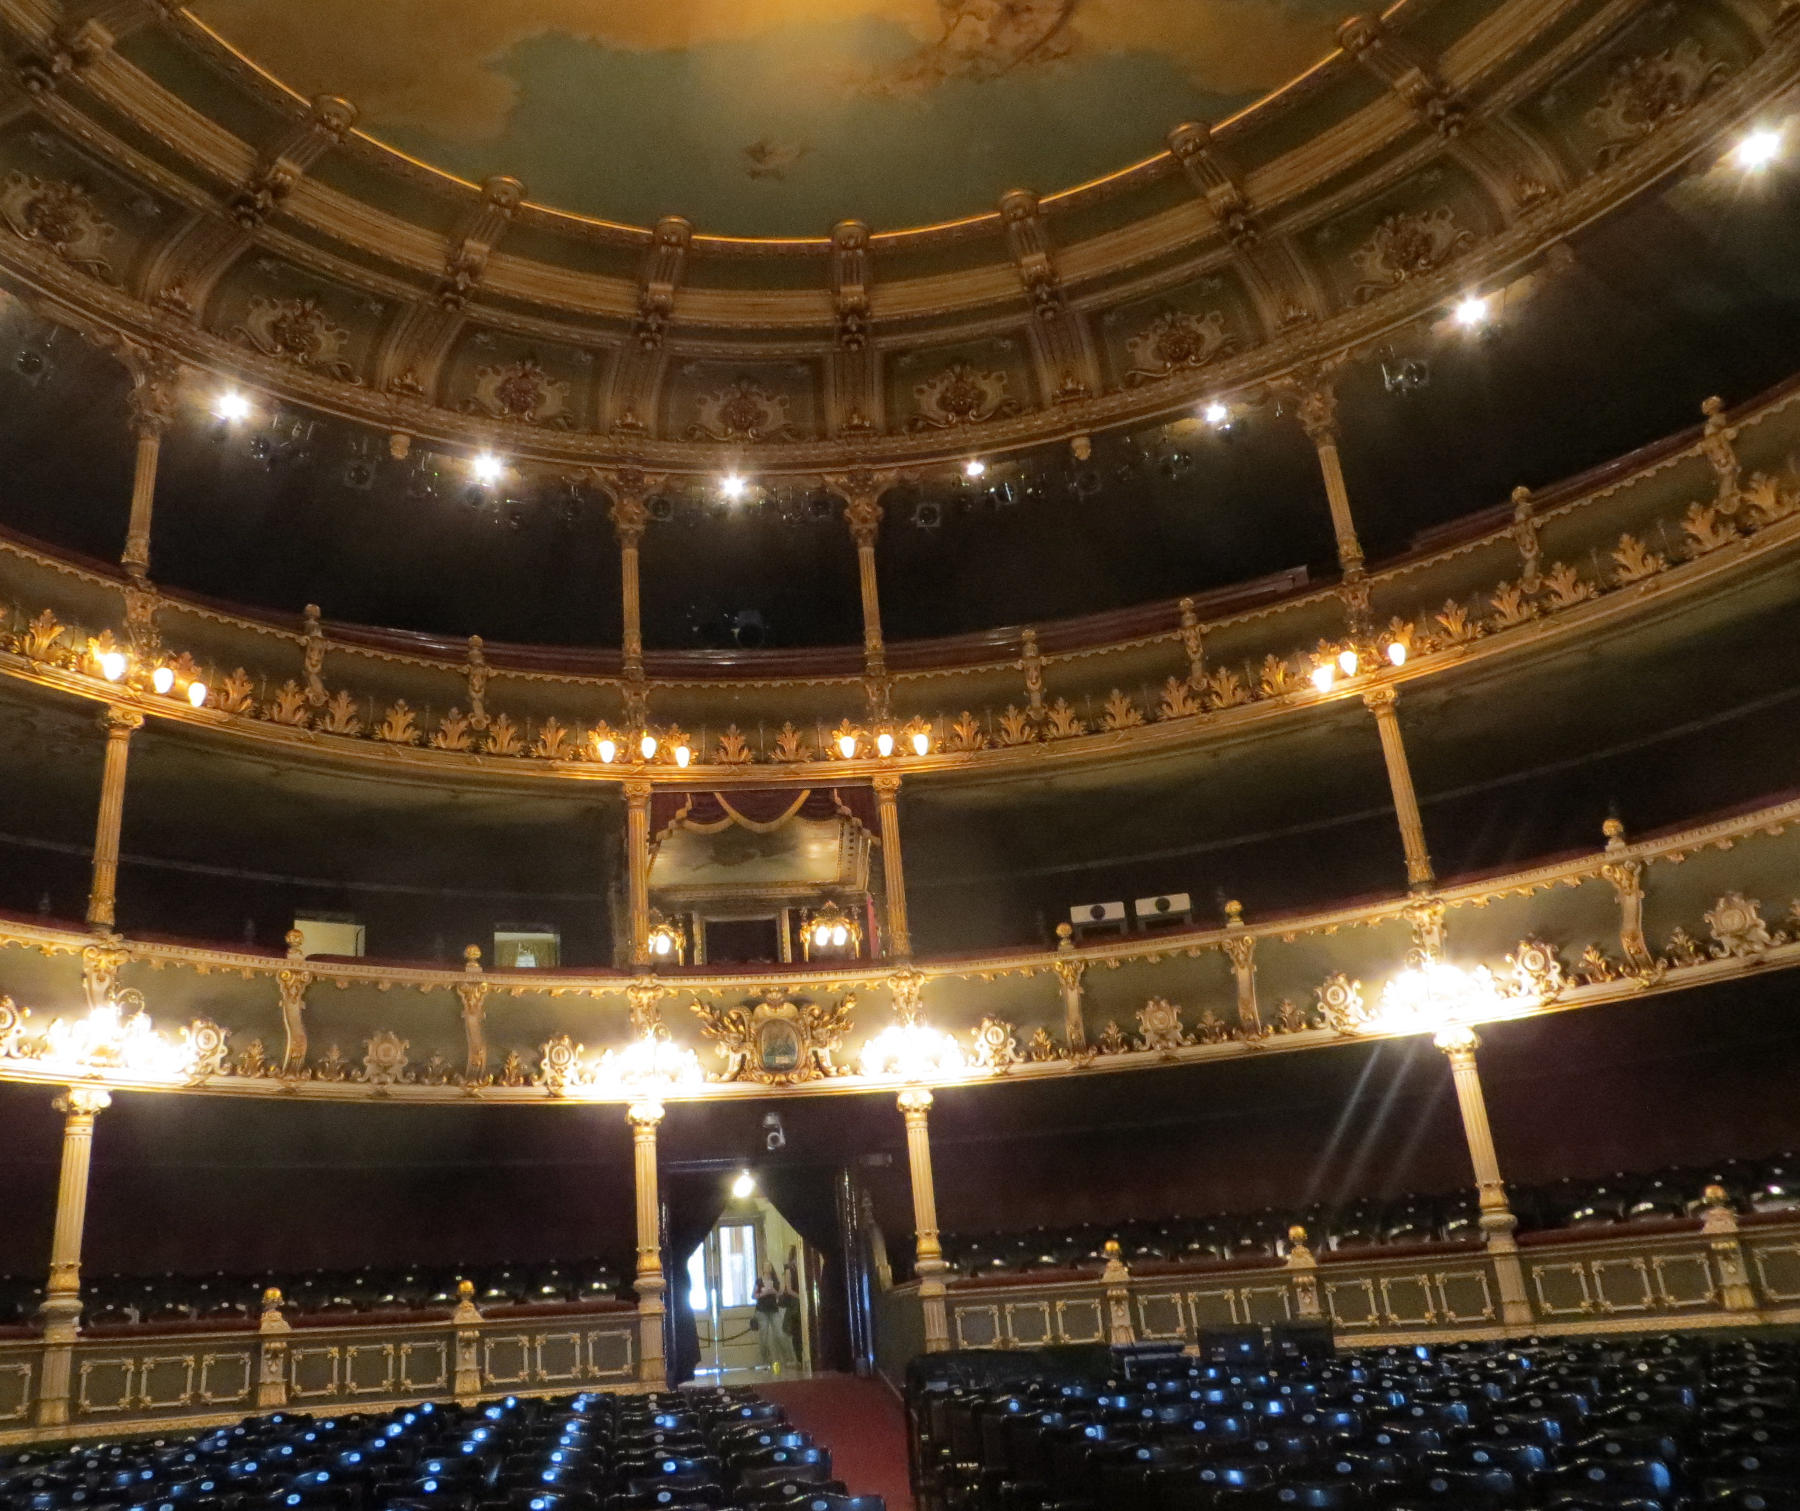 The auditorium is designed in the classical horse-shoe shape, so that virtually every seat has a great view.